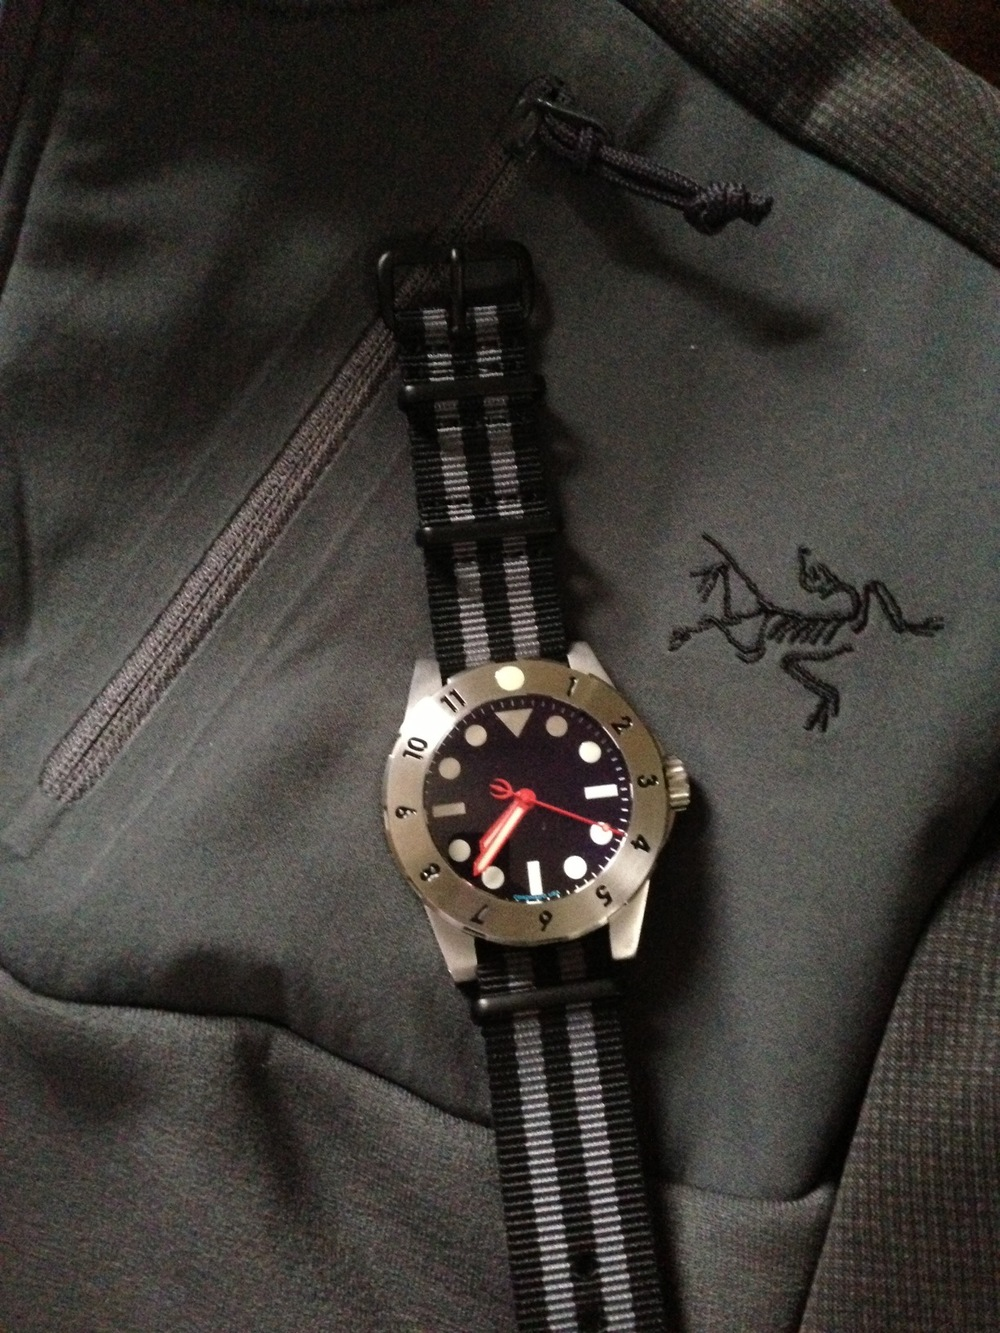 RESCO Patriot Gen 1 custom and Arc'teryx LEAF Naga top